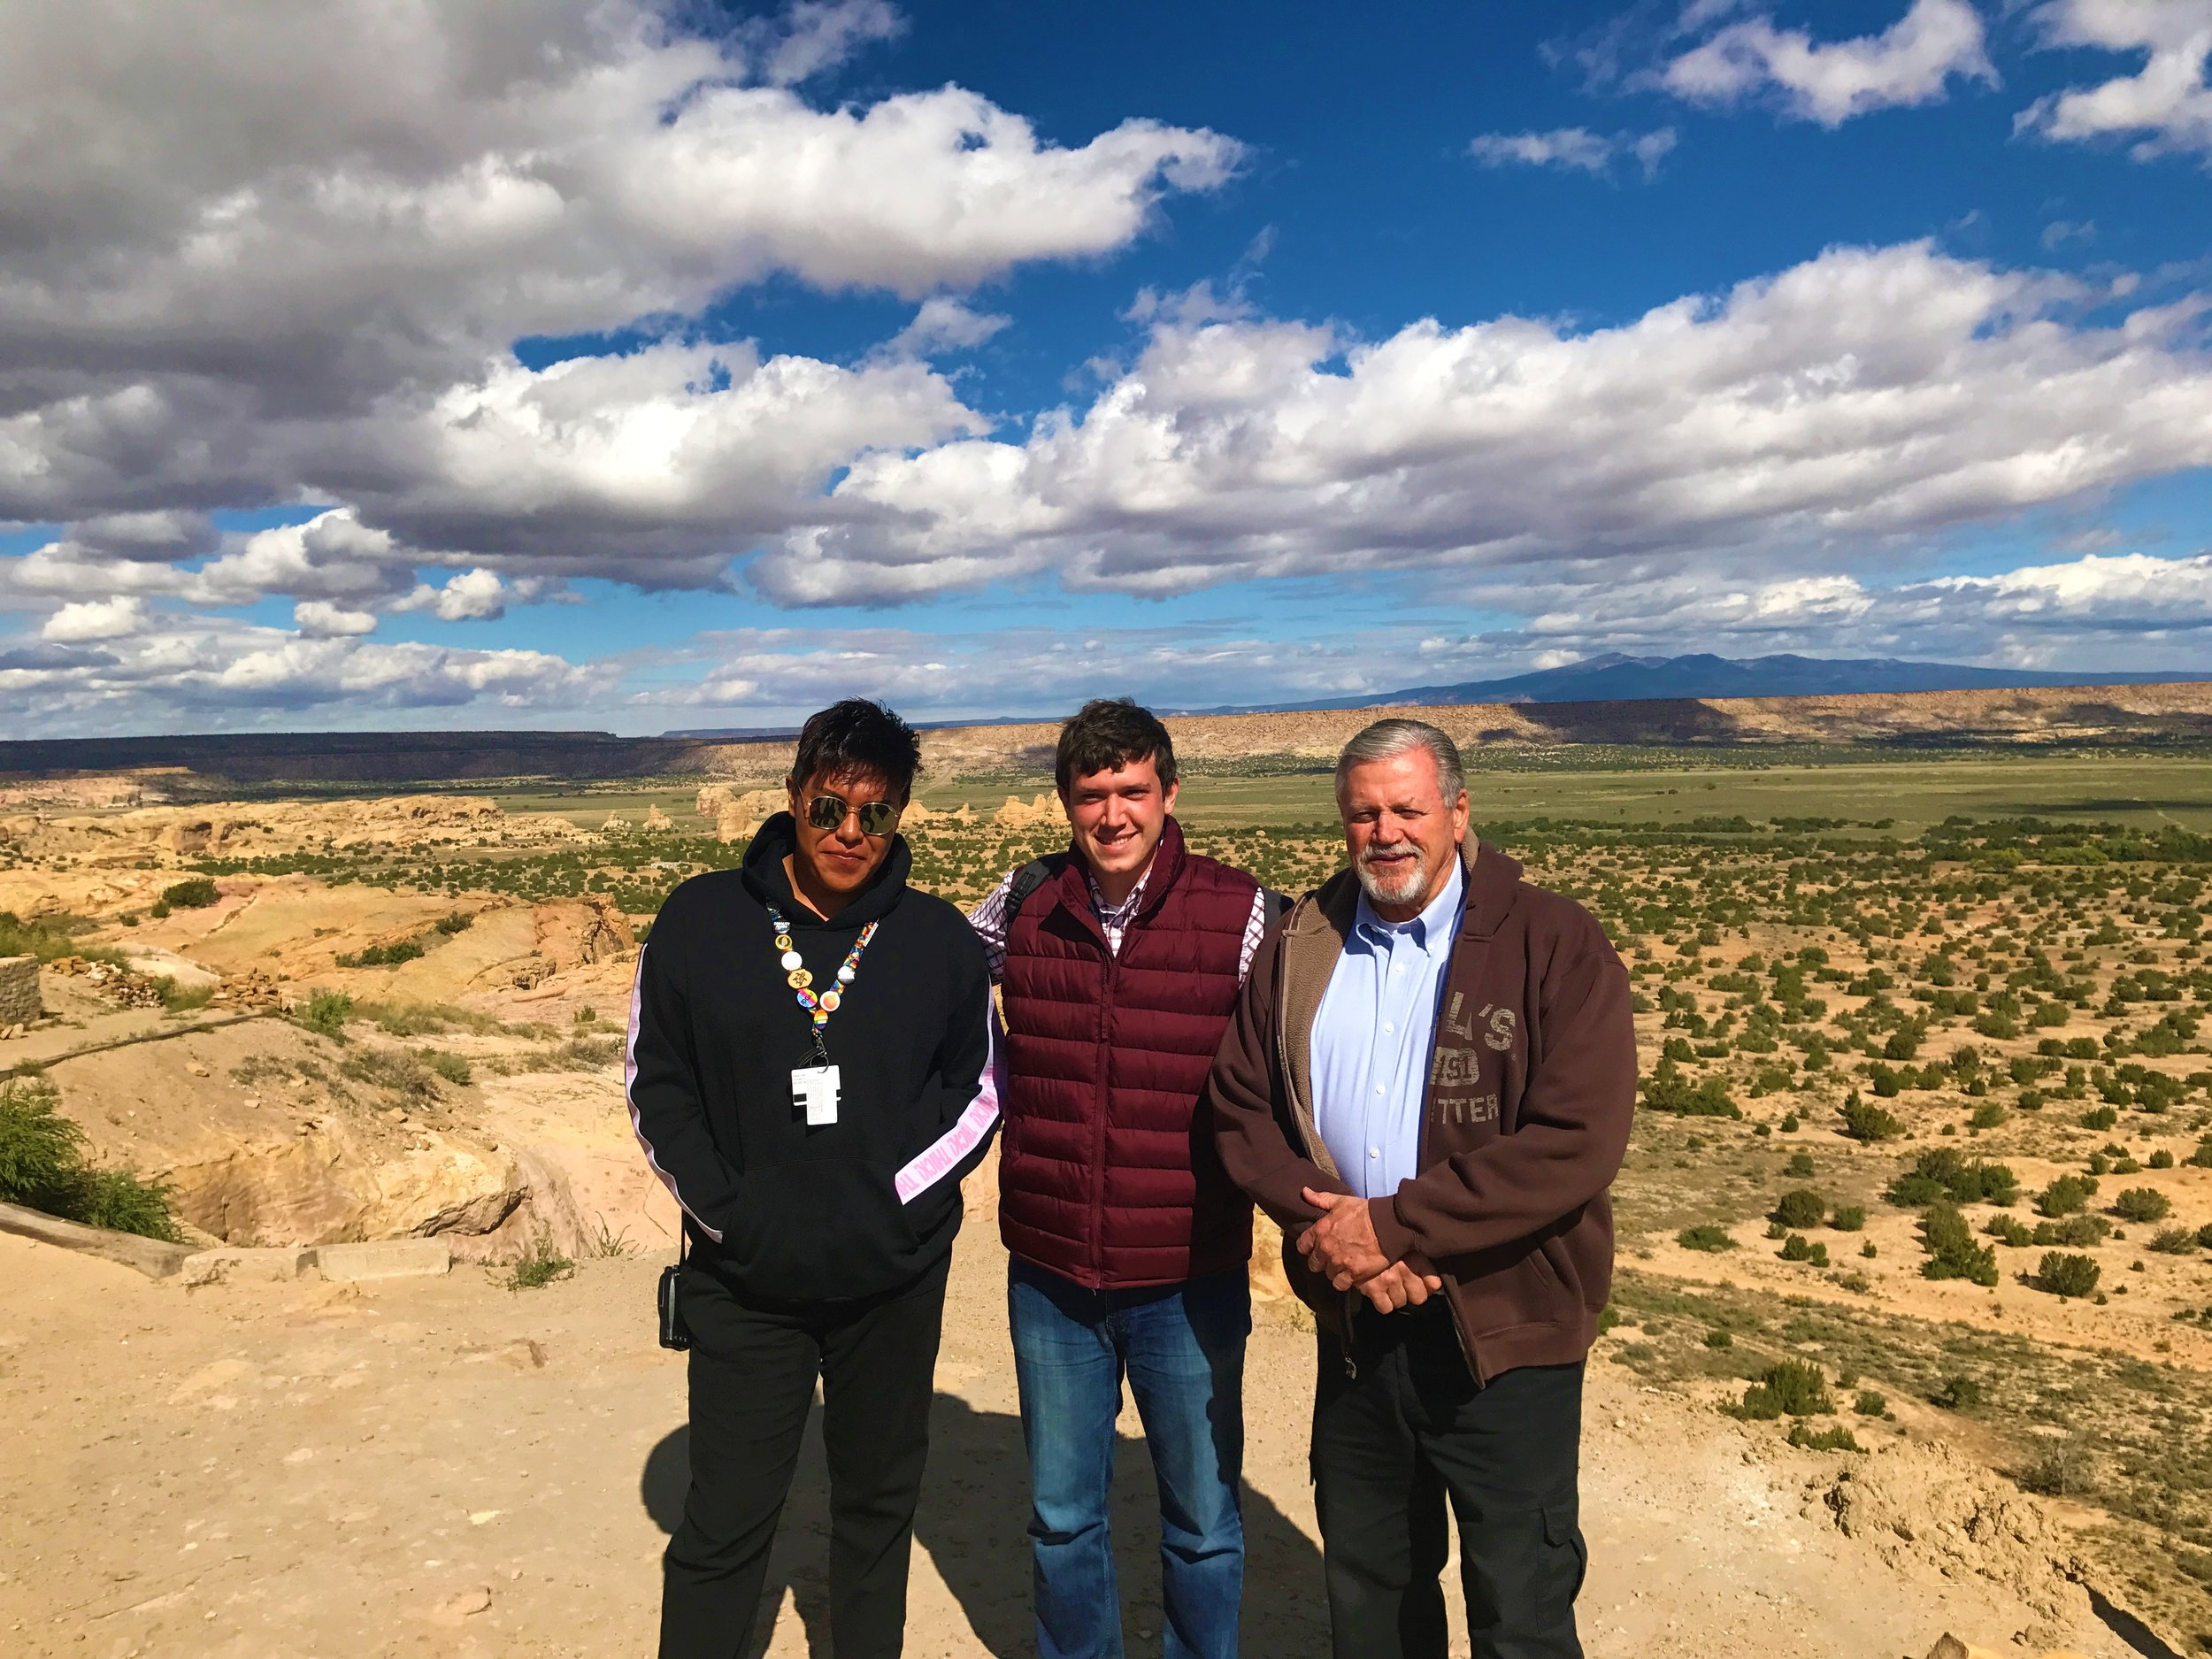 Pictured Left to Right: Acoma Local Guide, Tour Director - JD, Motorcoach Operator - Lyn